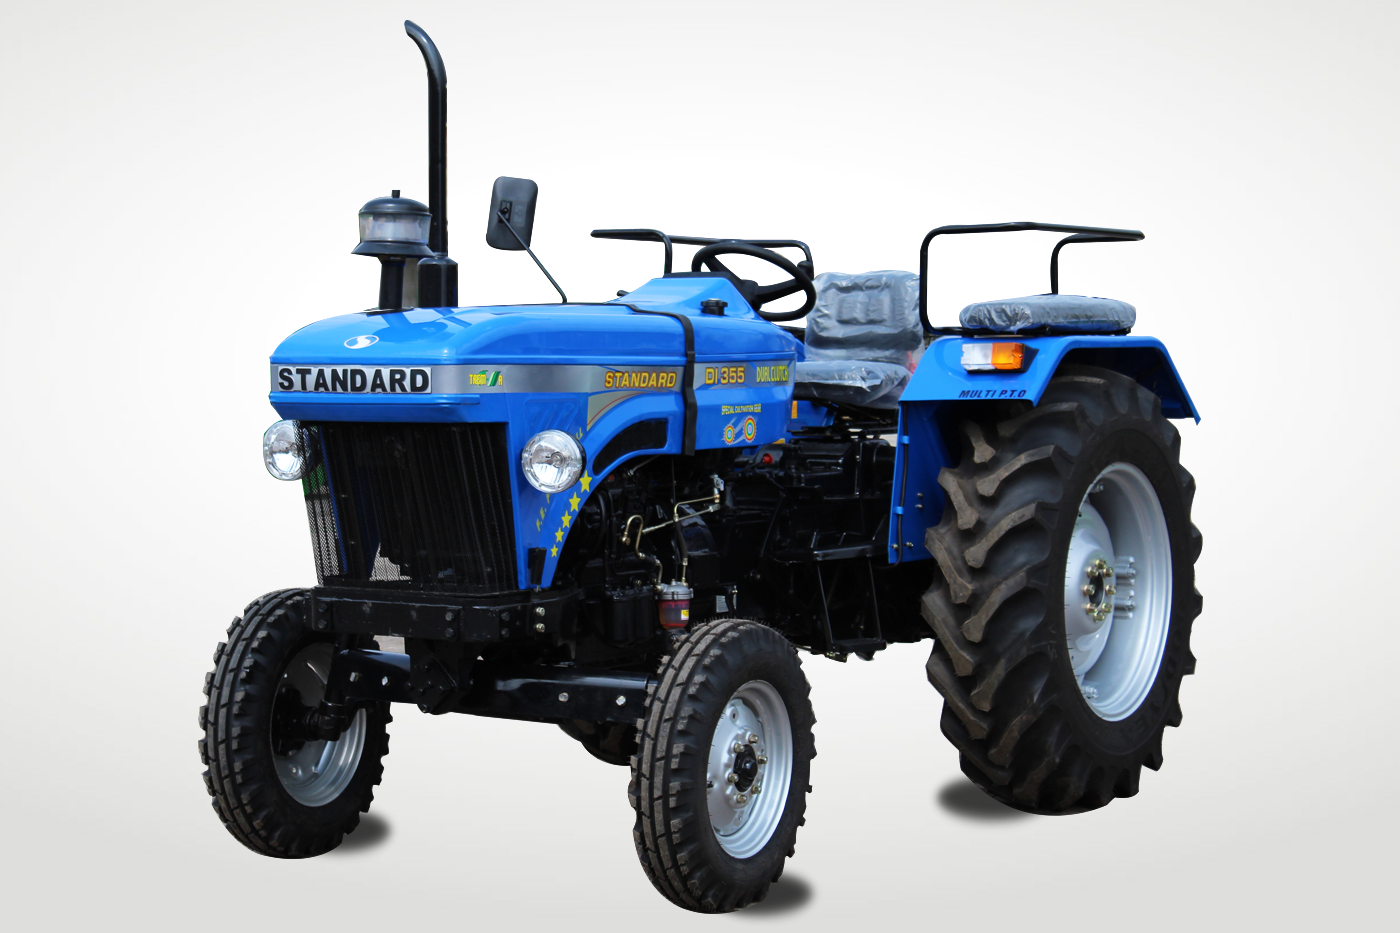 Standard DI 355 Tractor On-road price in India. Standard DI 355 Tractor Features, specifications, and full video review